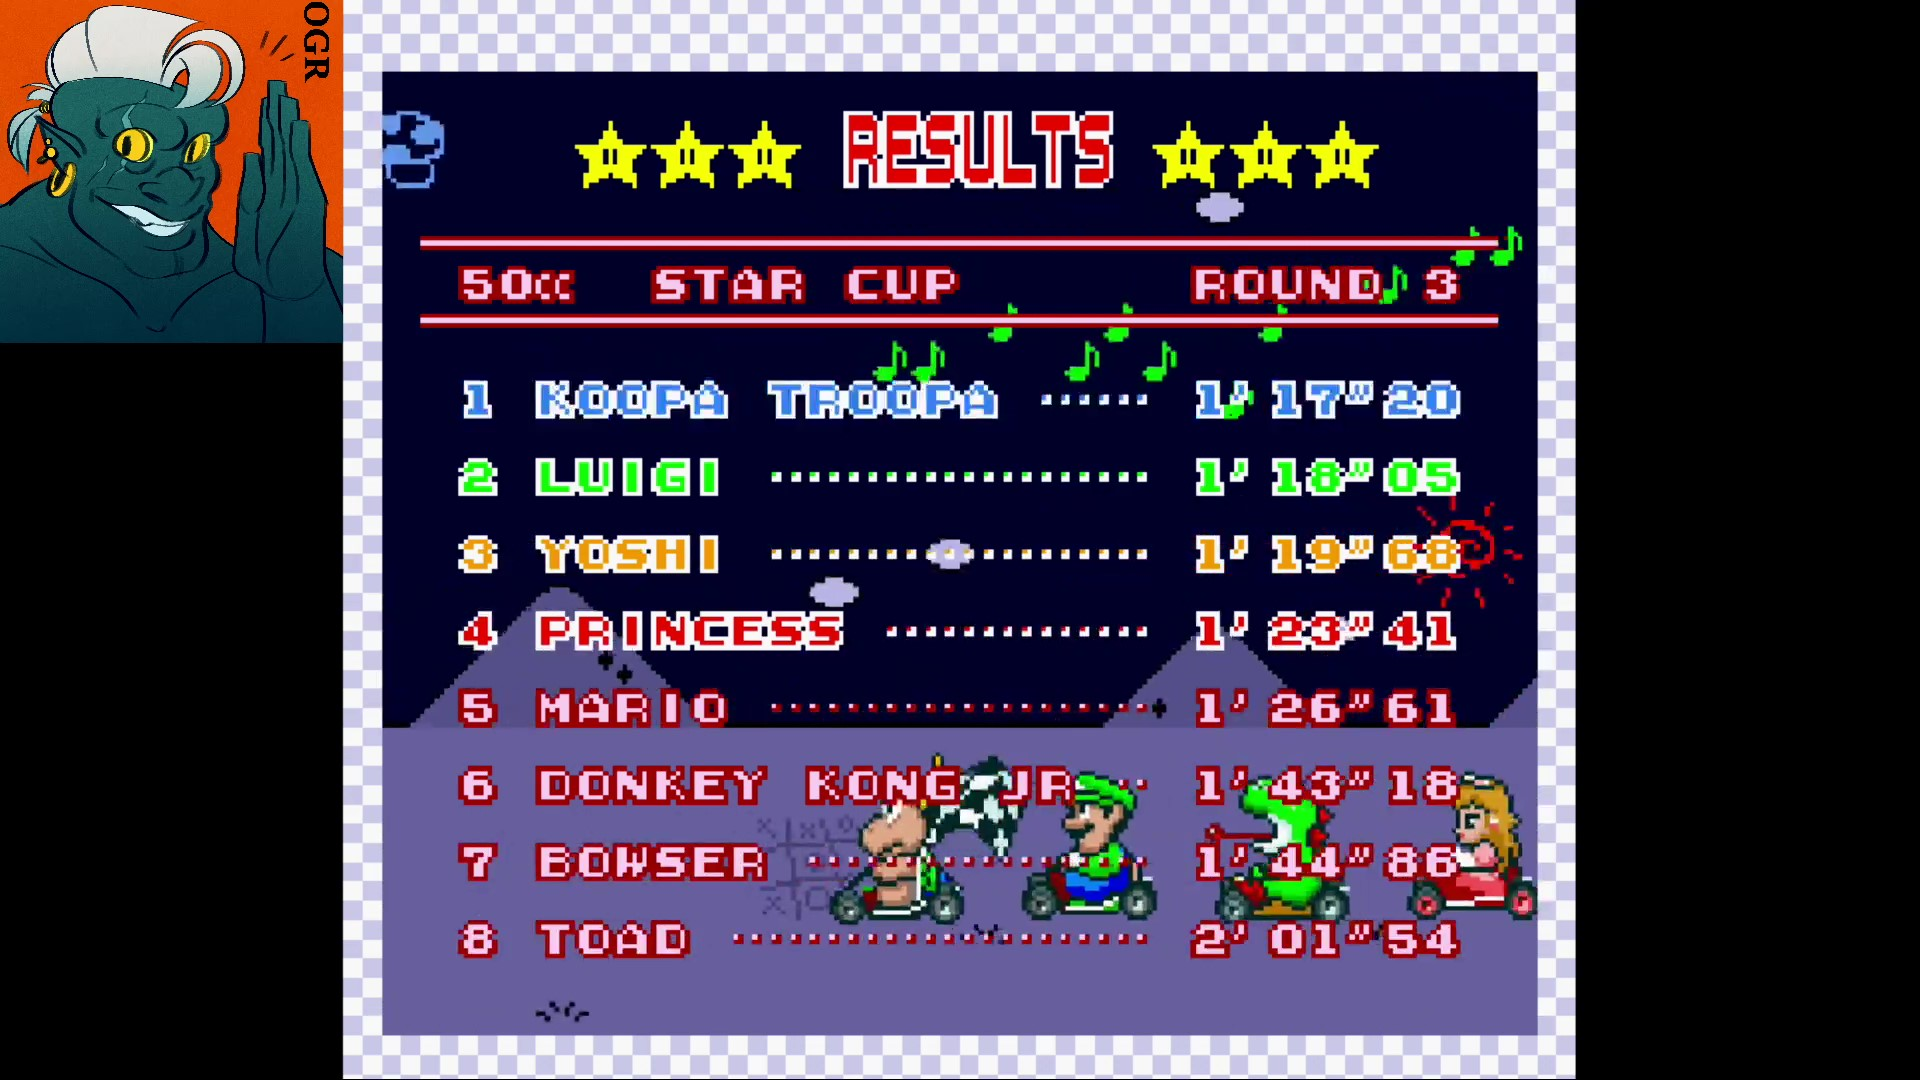 Super Mario Kart [Star Cup: Vanilla Lake 1: 50CC] time of 0:01:17.2